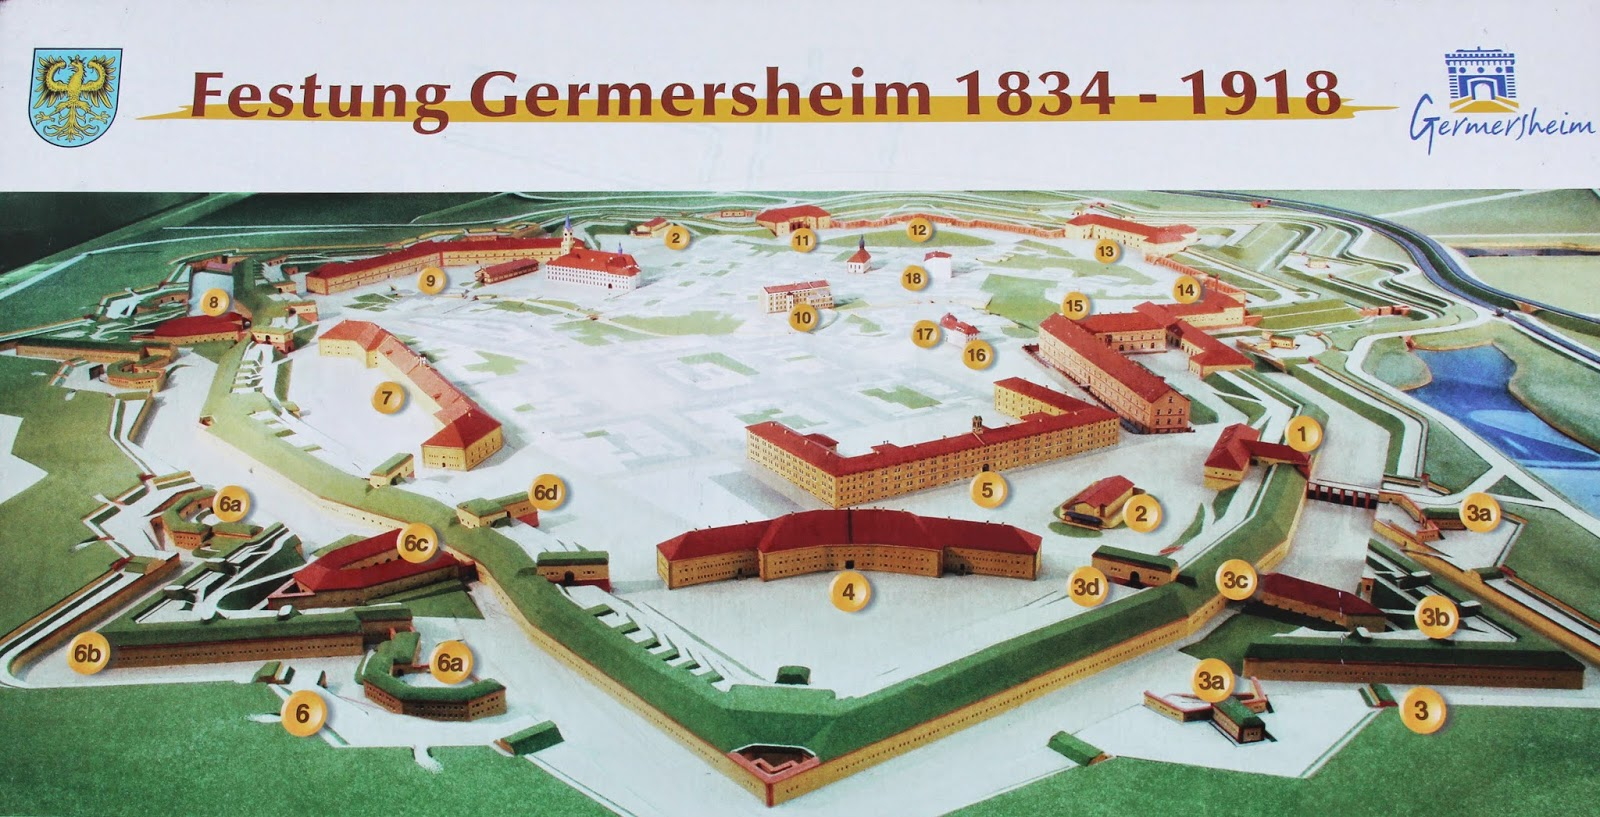 Germersheim Fortress Map